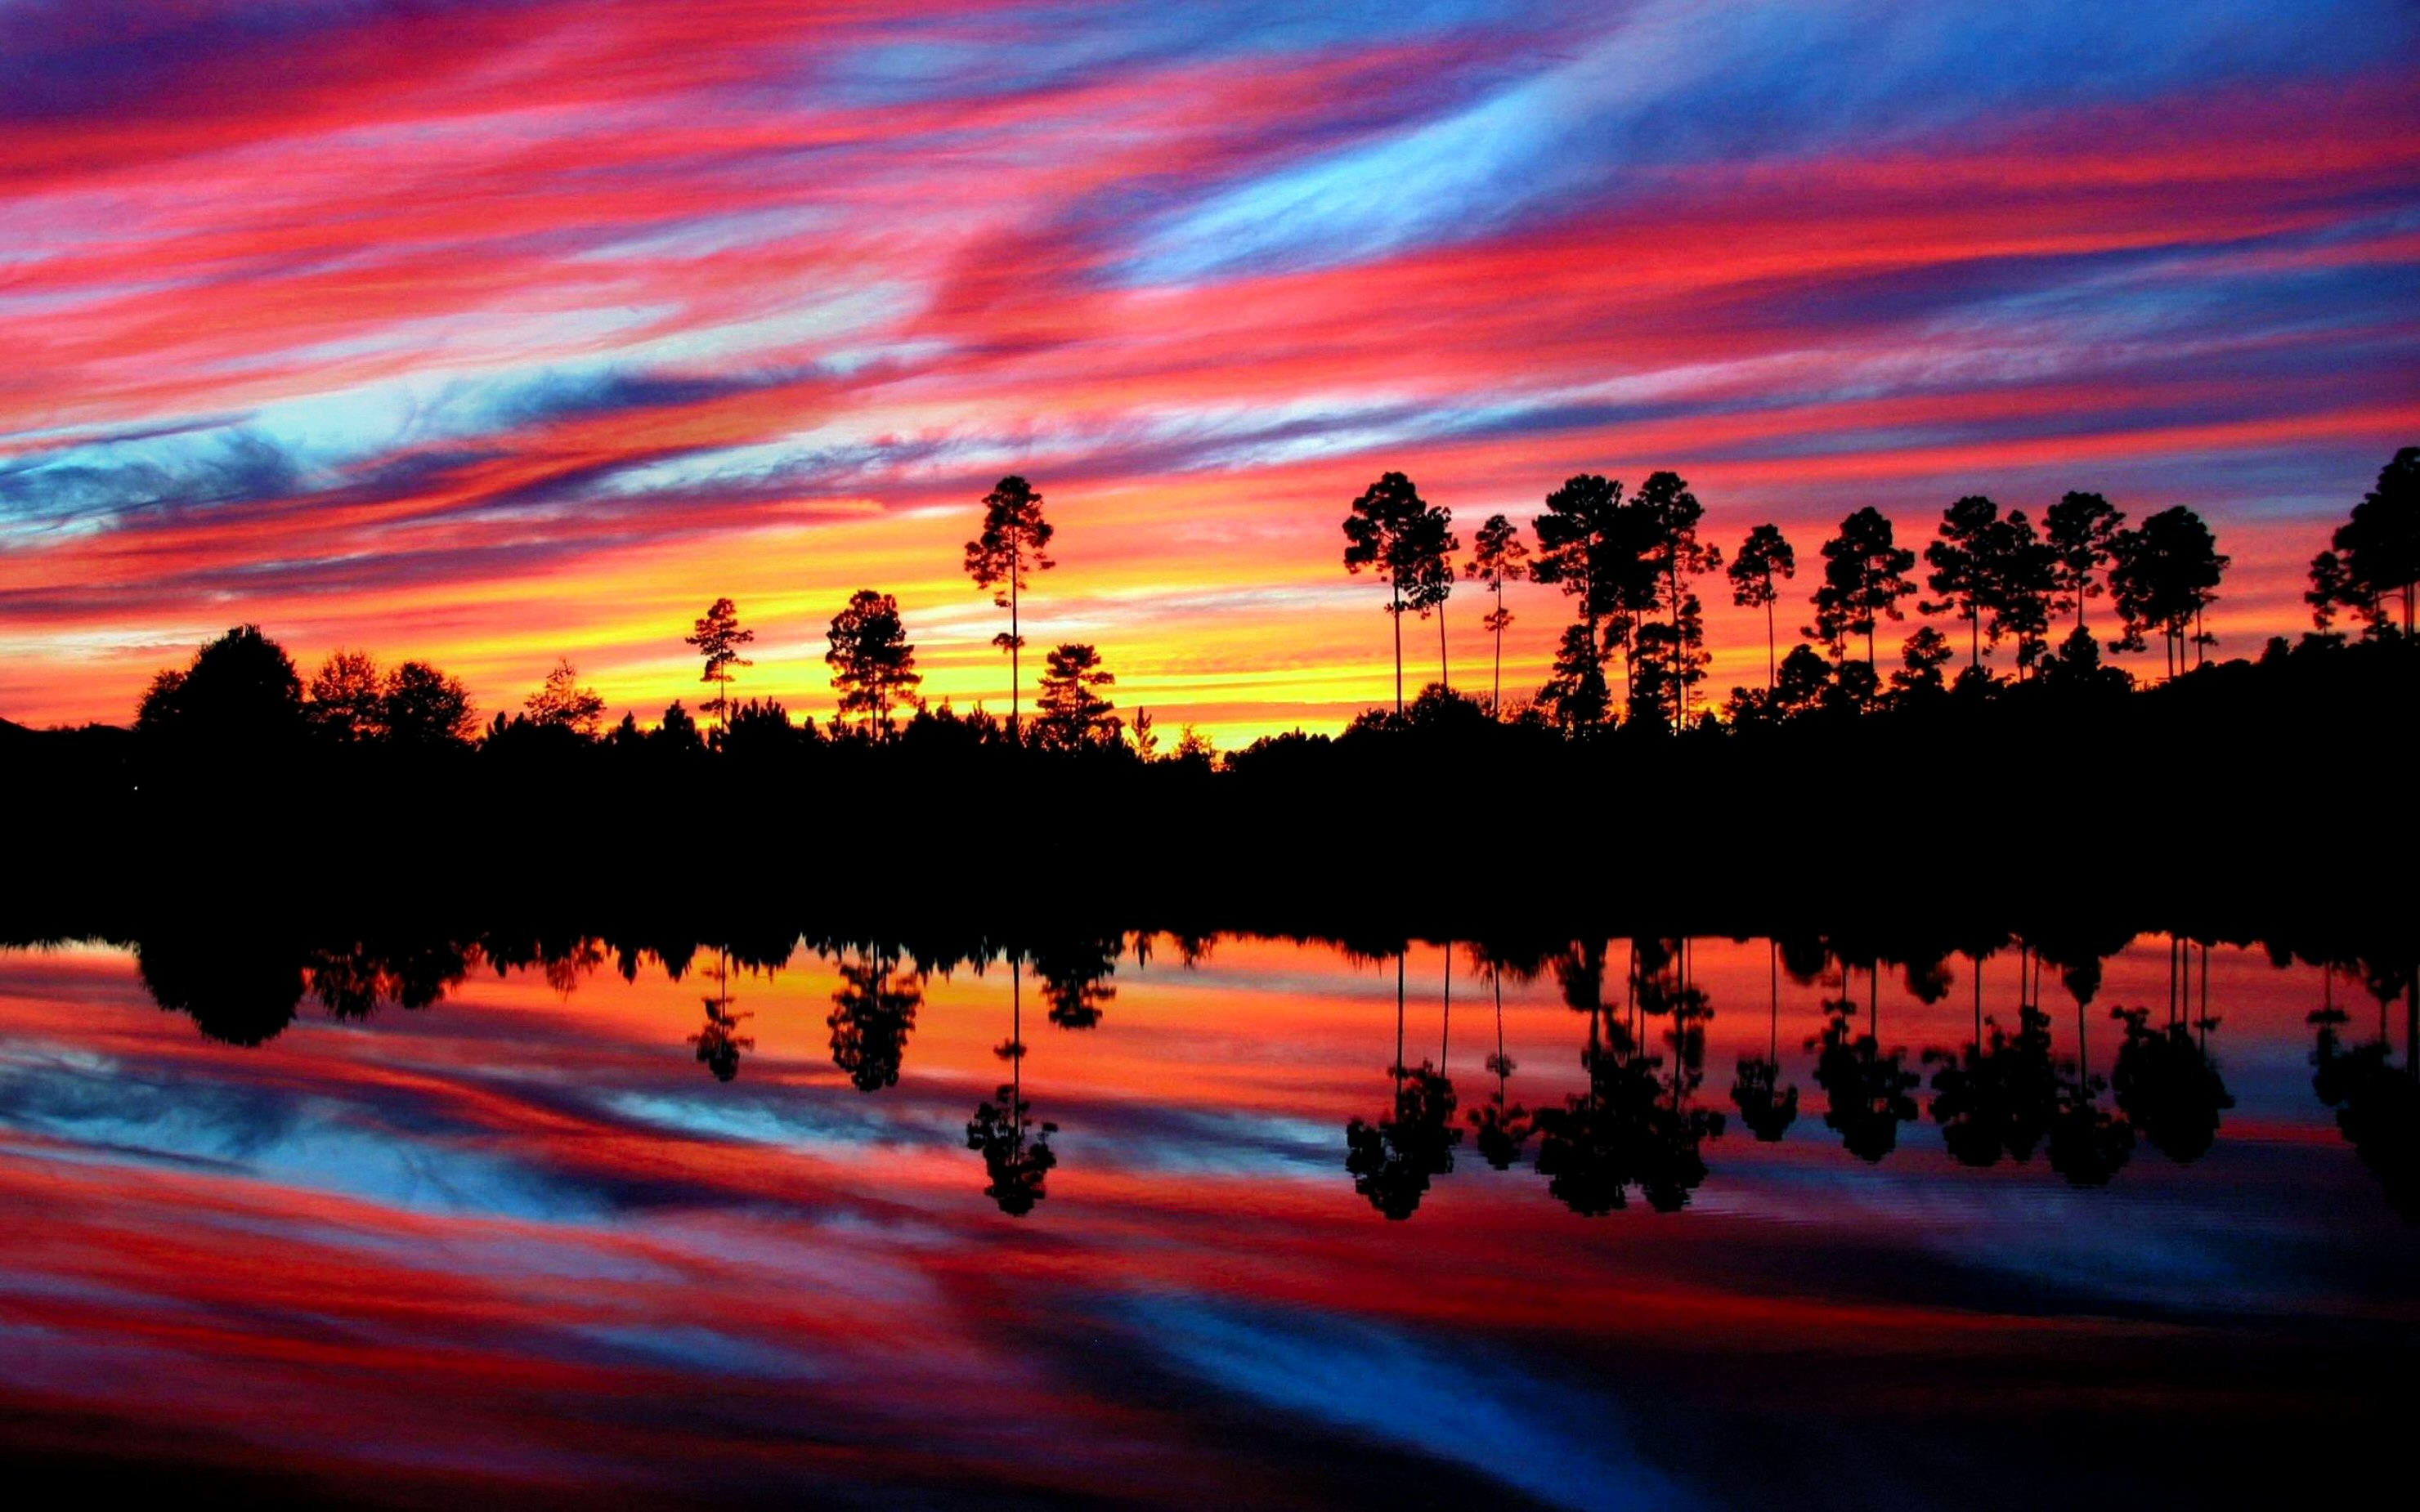 2791 Sunset HD Wallpapers | Backgrounds - Wallpaper Abyss